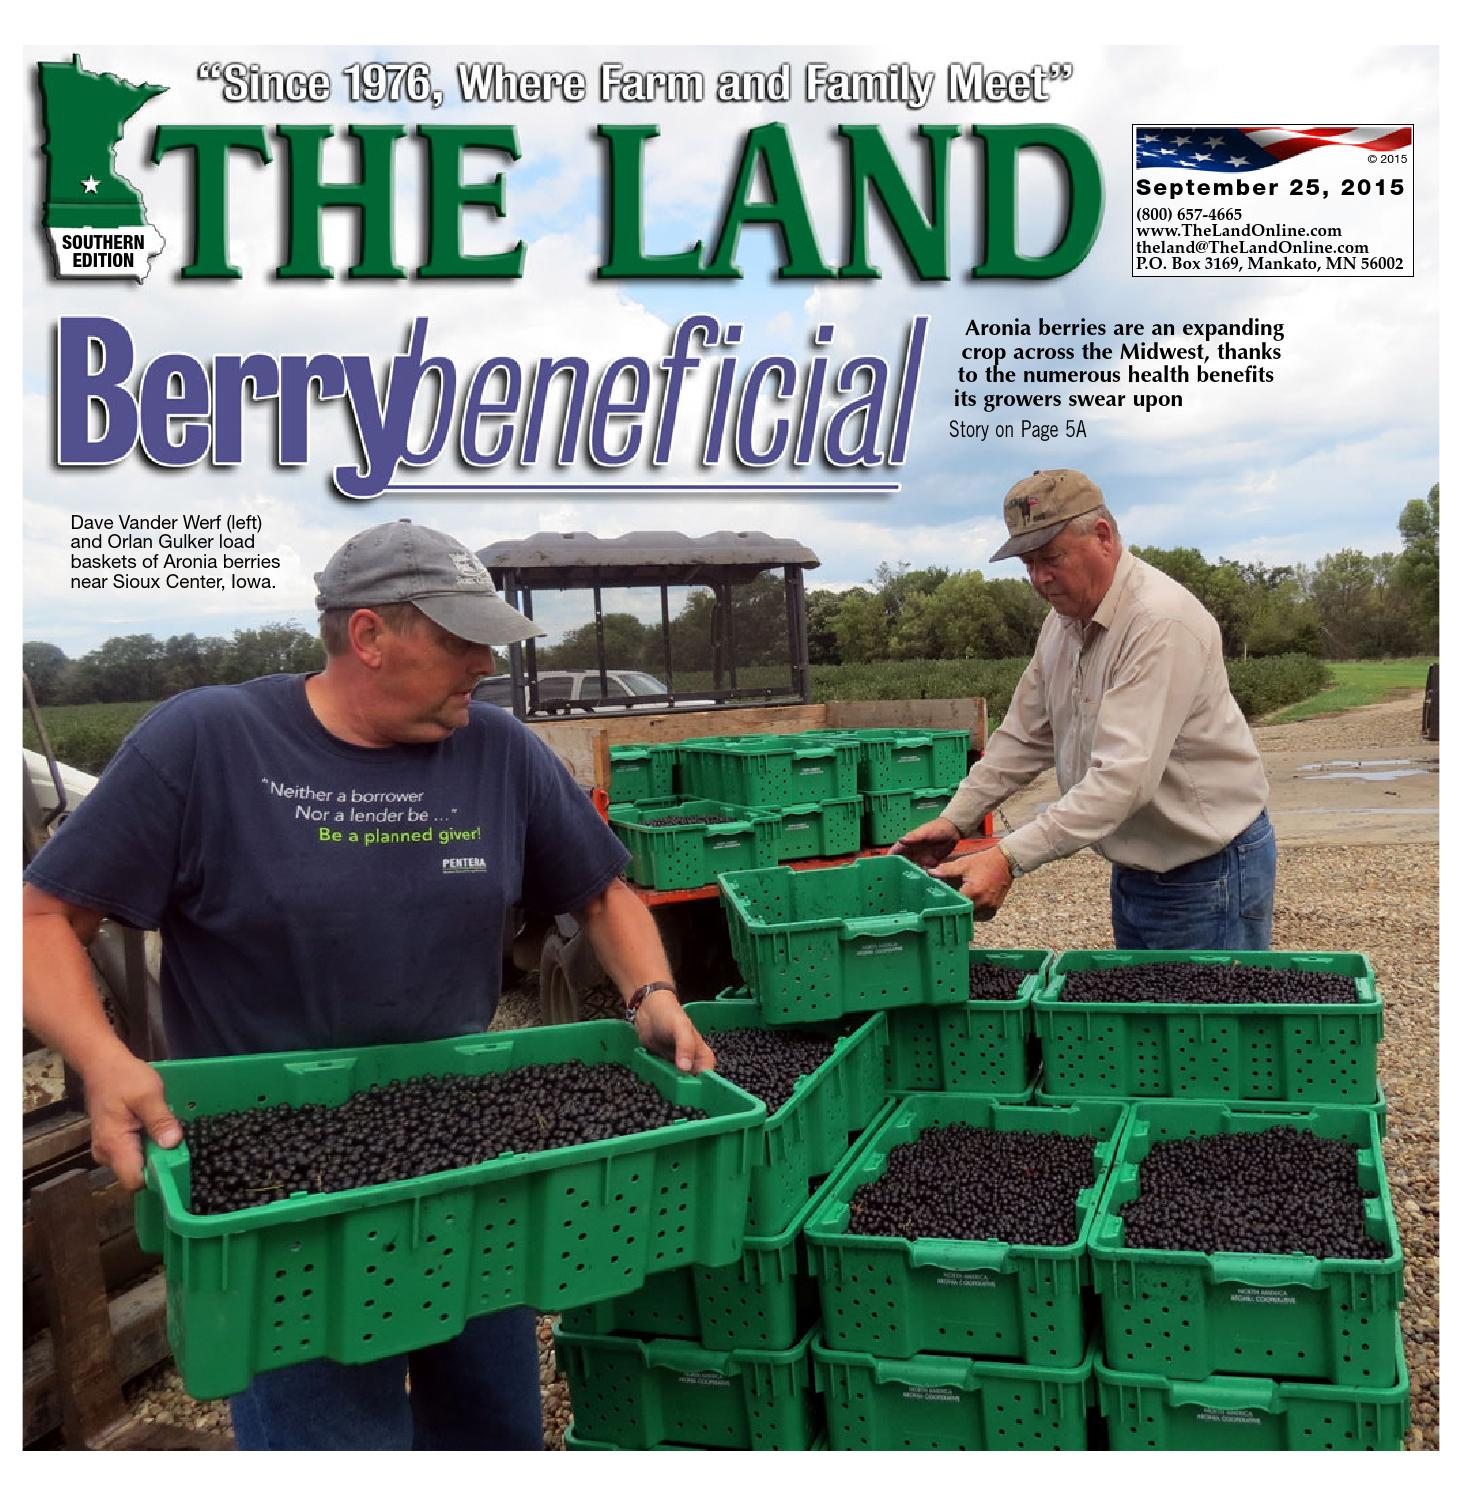 The Land Sept 25 2015 Southern Edition By Issuu How To Replace A 3way Switch Kanderson Enterprises